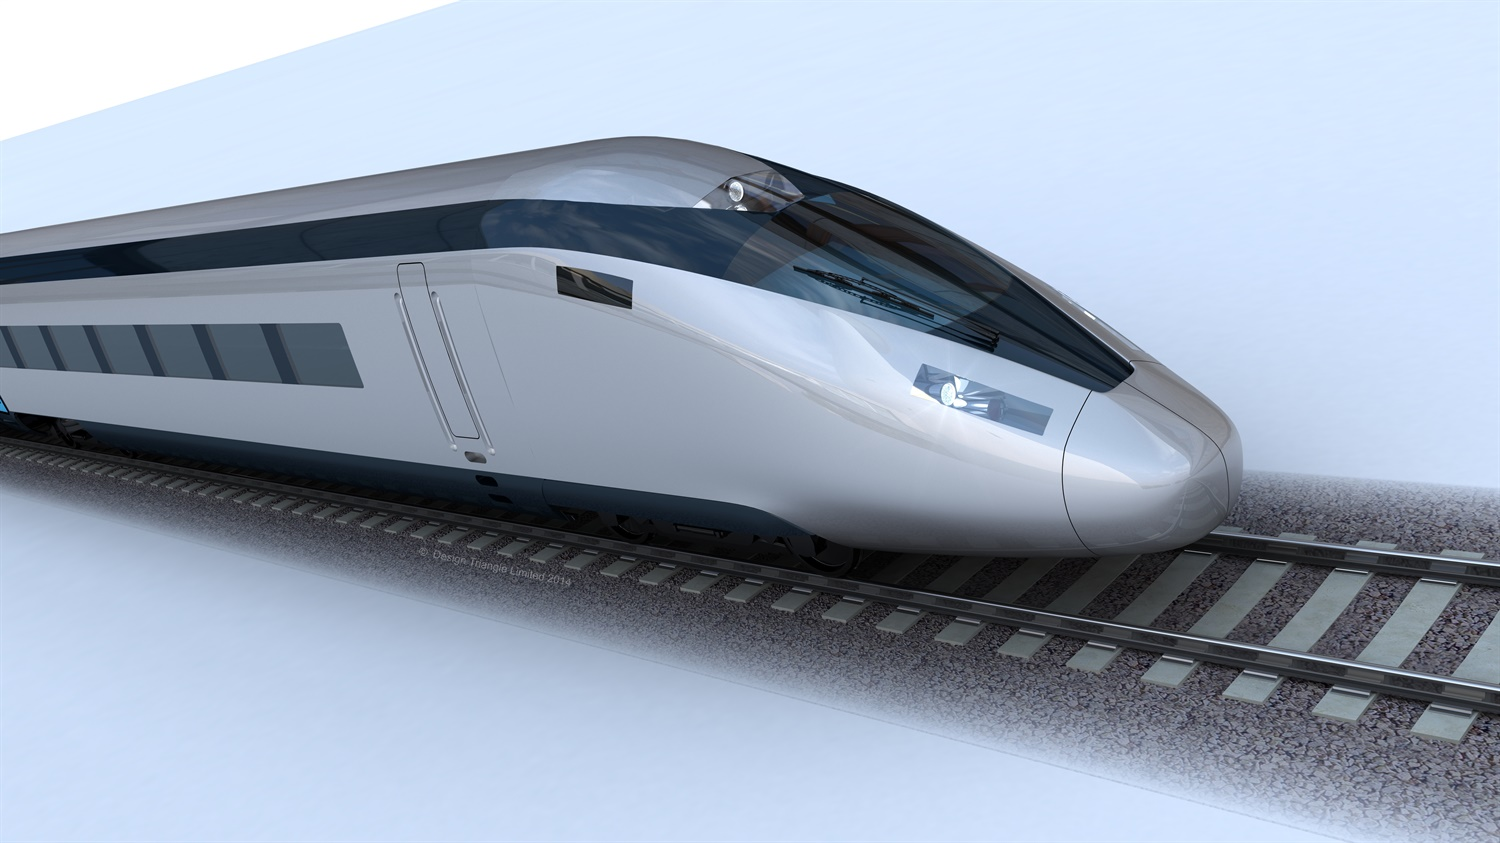 D2N2 approves £300,000 grant to look at benefits of HS2 sites